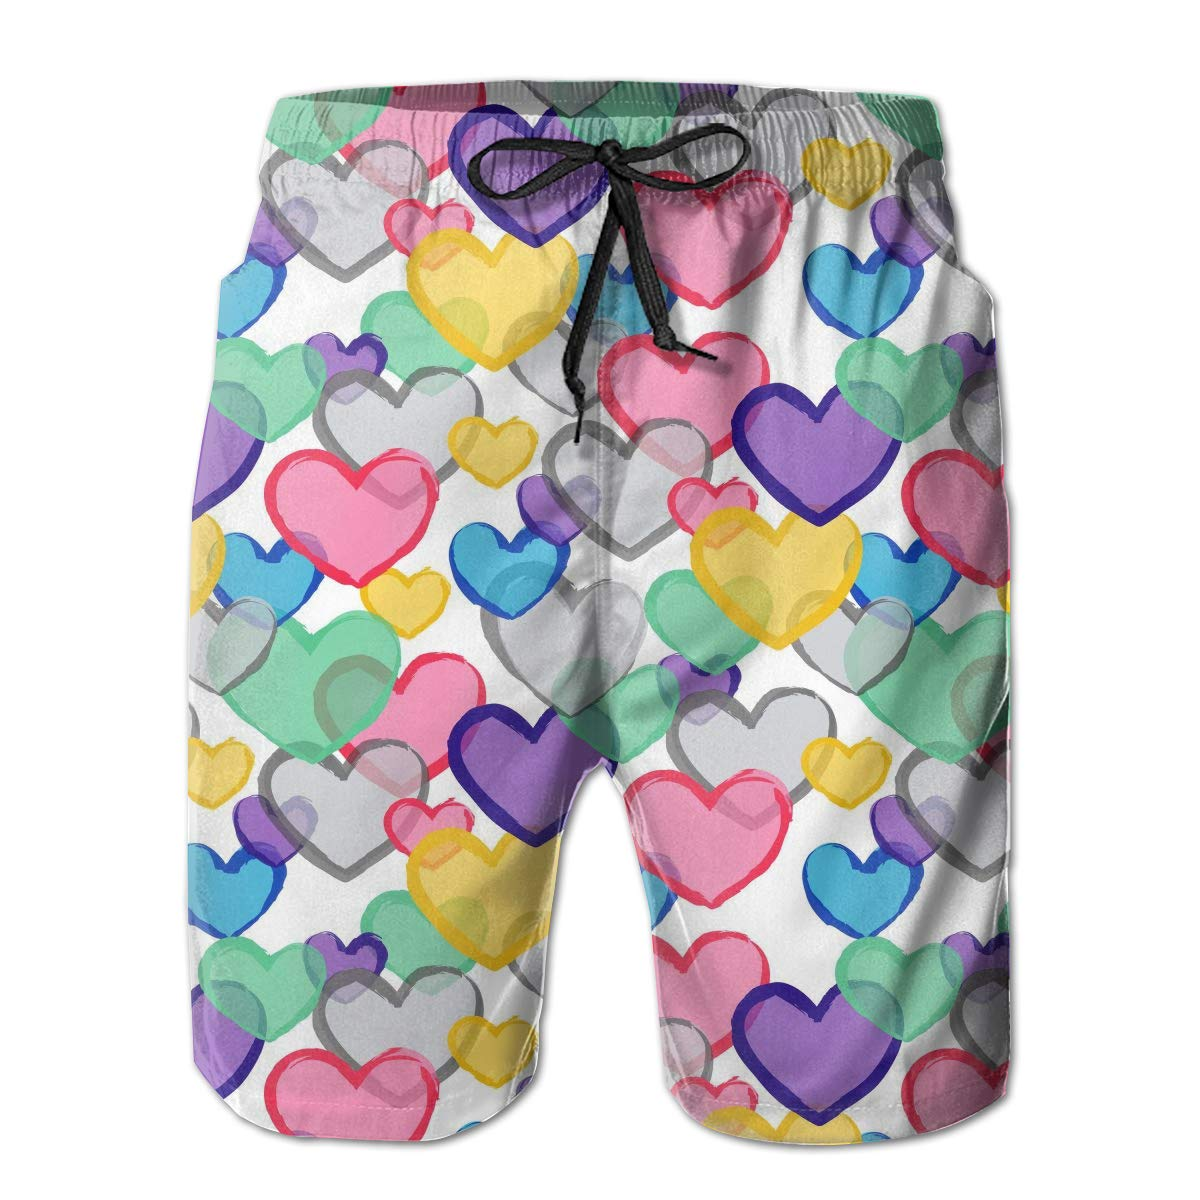 Mens Swim Trunks with Mesh Lining Pockets Colored Love Heart Boys Polyester Board Shorts Swimwear